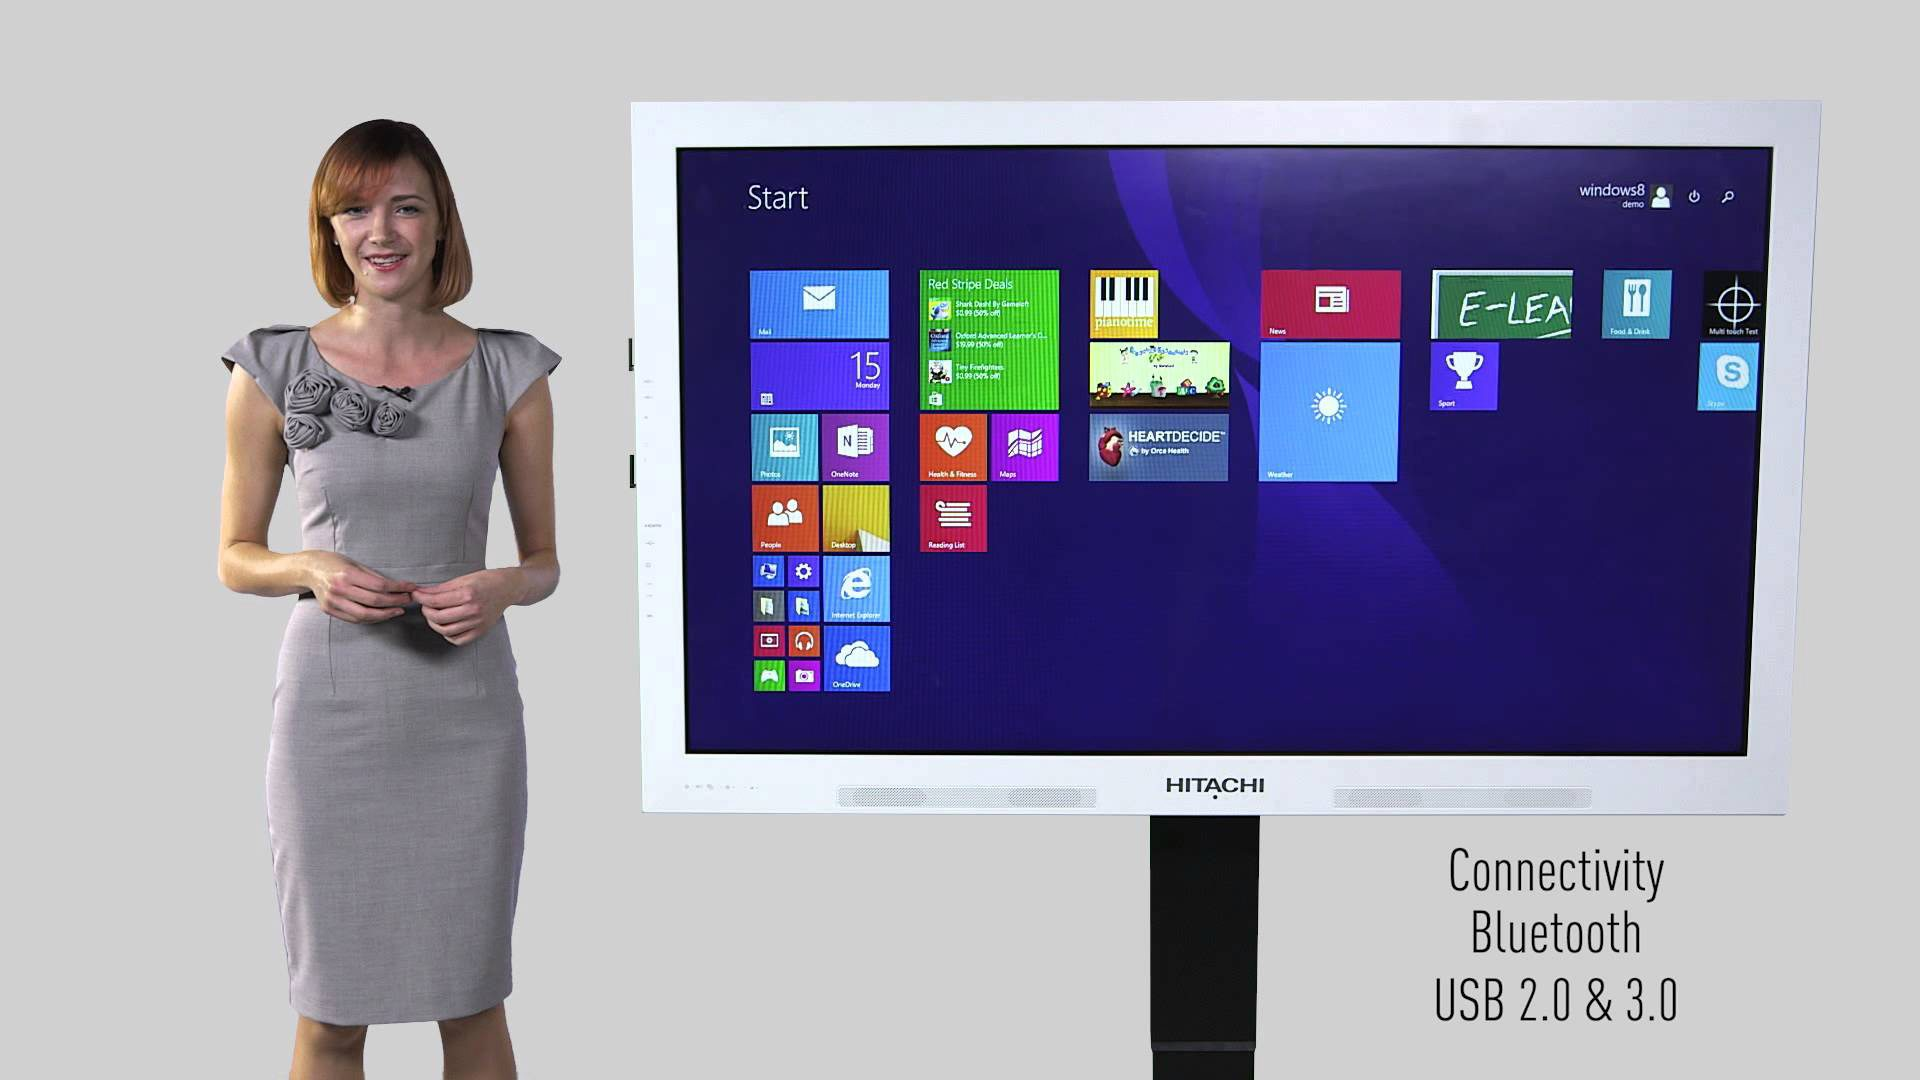 Hitachi Interactive Panel - Connectivity Bluetooth